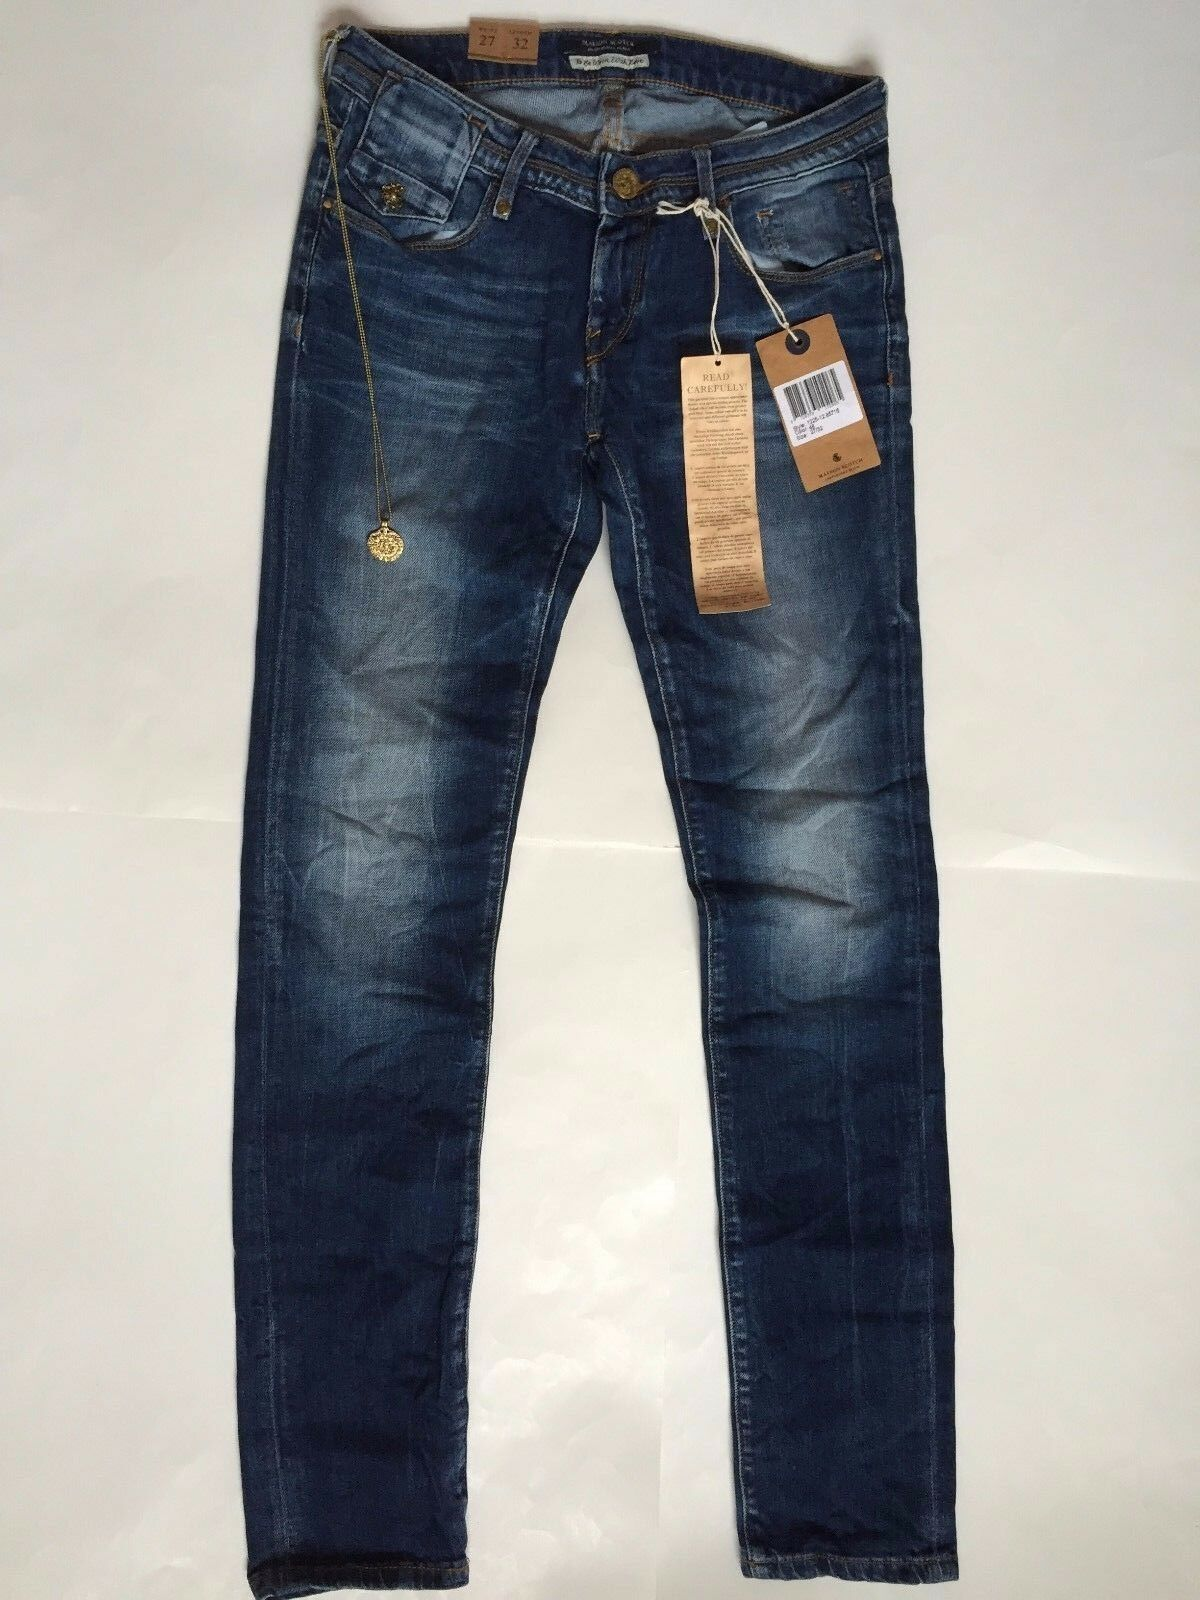 Authentic Masion Scotch & Soda Amsterdams bluew Women's Denim Jeans MSRP 159 NWT